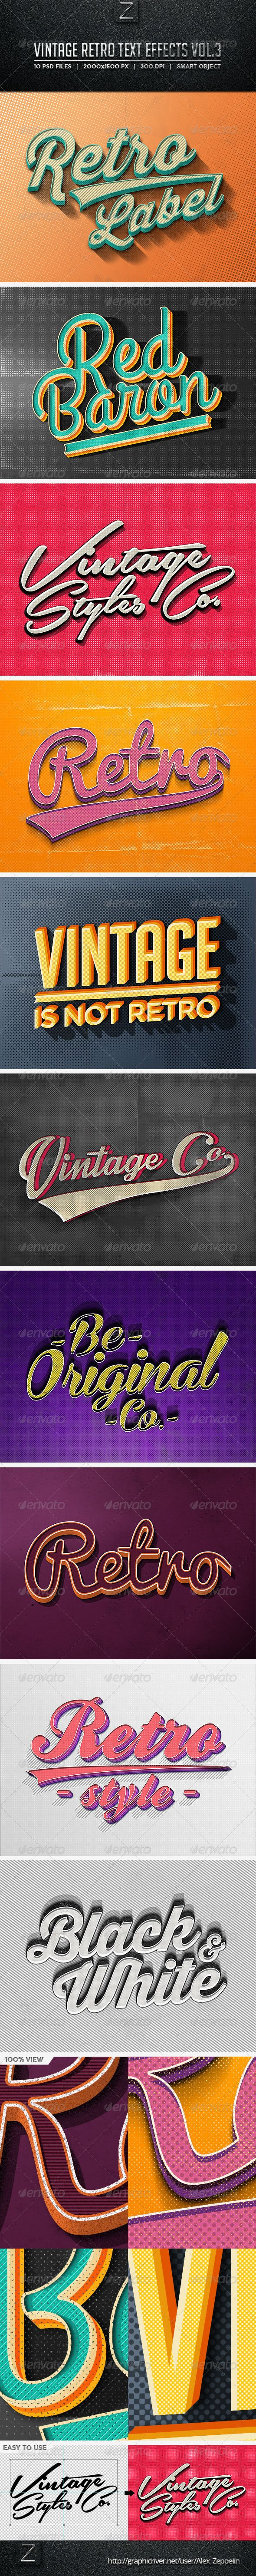 Vintage Text Effects Vol.3                                                                                                                                                                                 Más